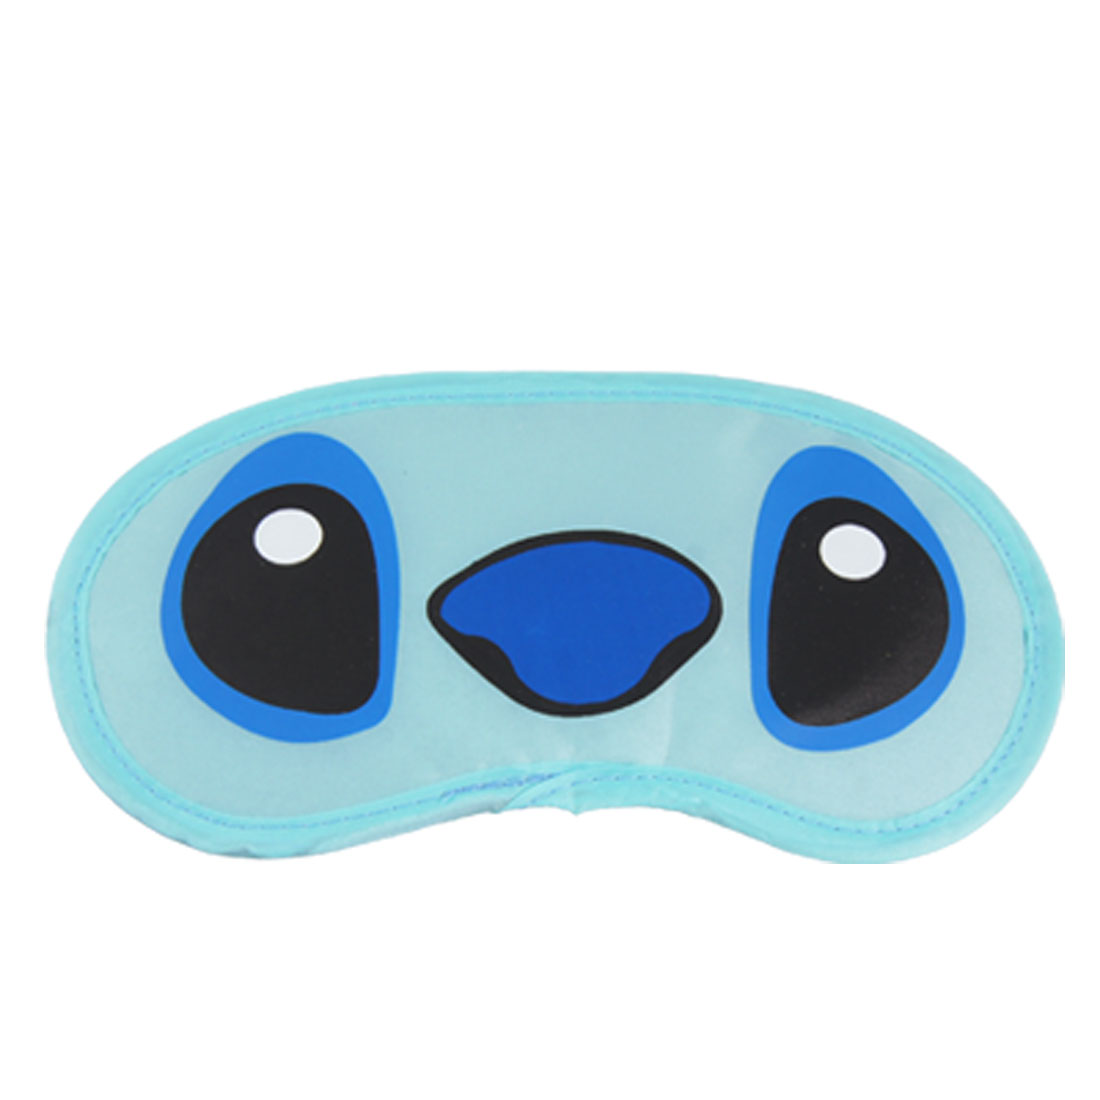 Unique Bargains 2 Pcs Sleeping Eyes Mask Cover Travel Home Use Eyepatch Blue